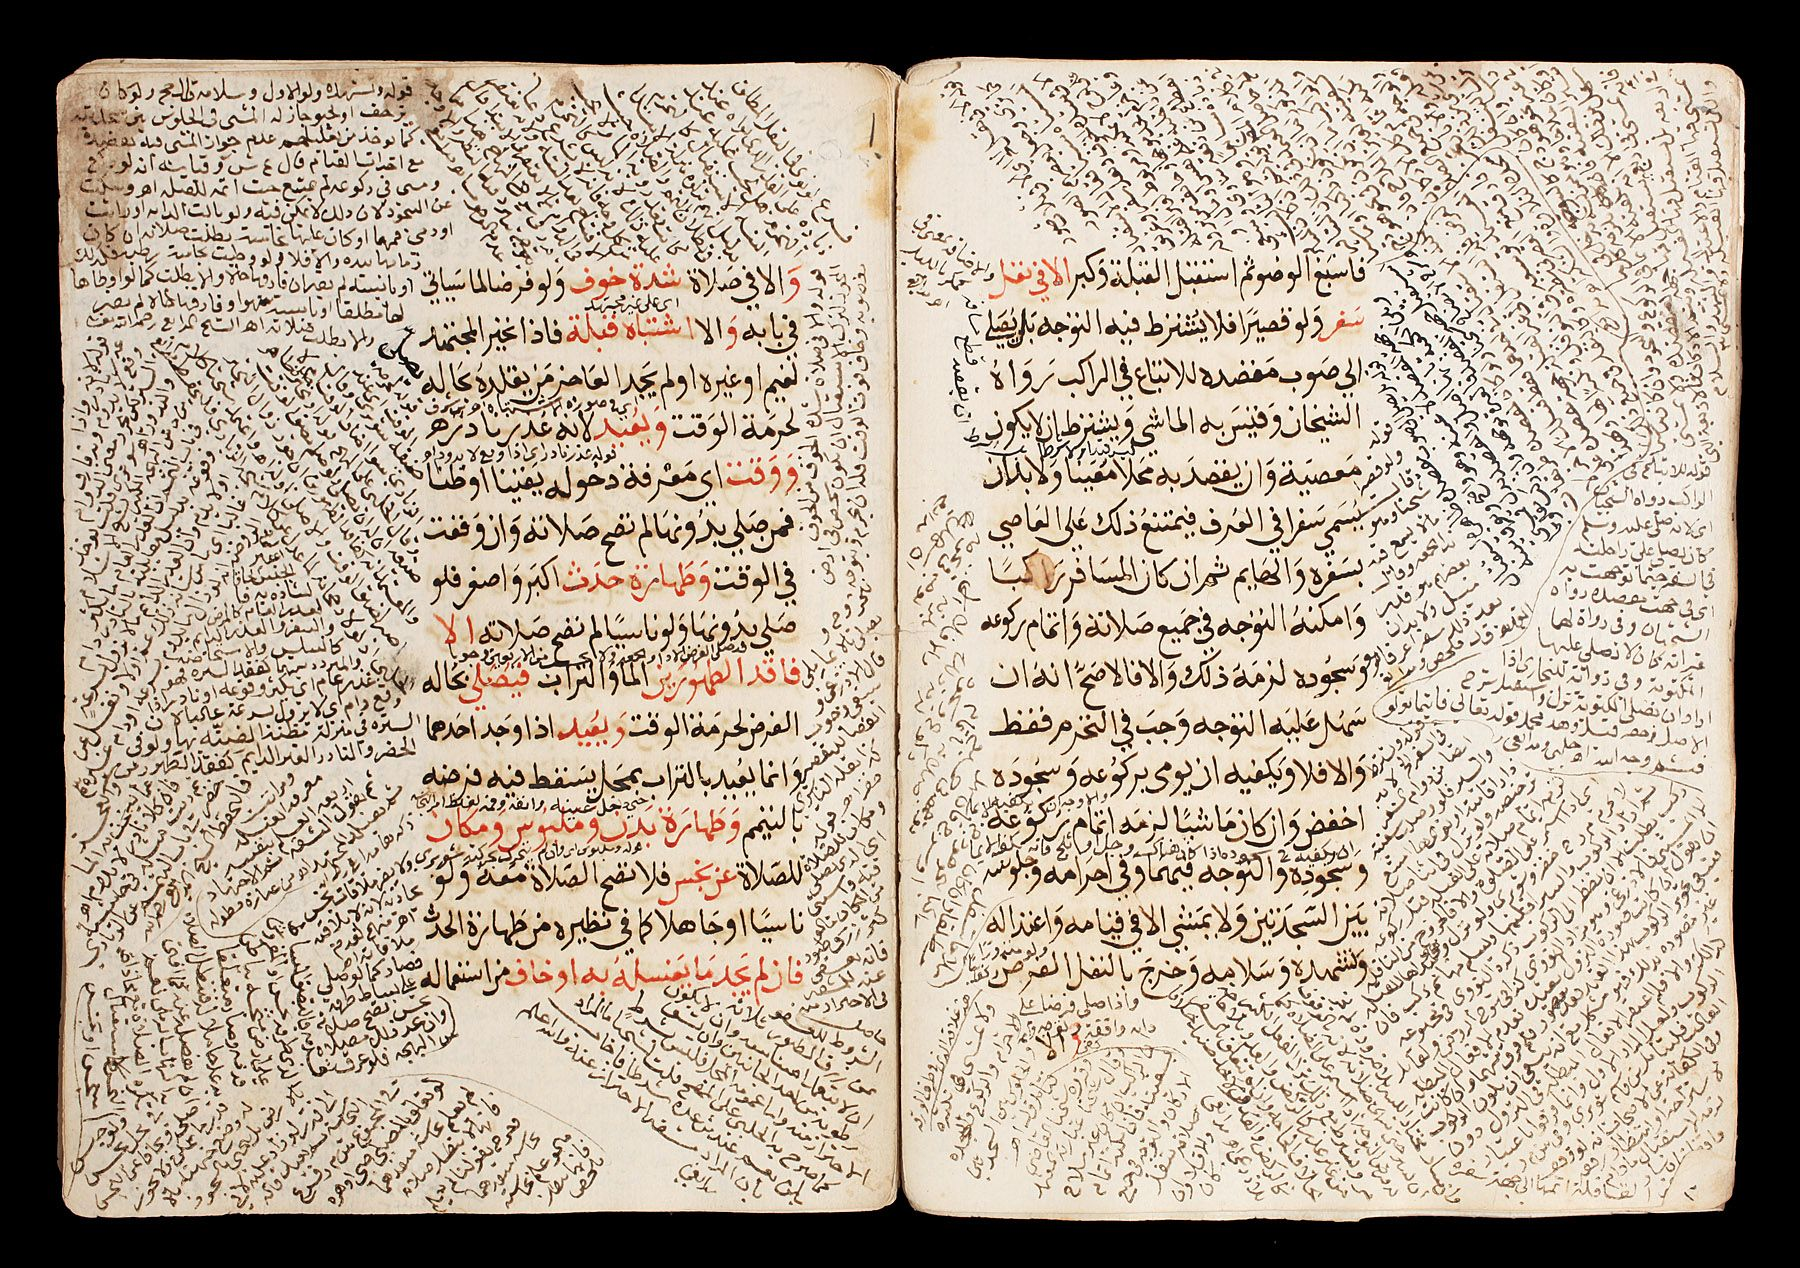 18th-c. legal text from Āl Budeiry Library (<a href='https://w3id.org/vhmml/readingRoom/view/133290'>ABLJ 198</a>)